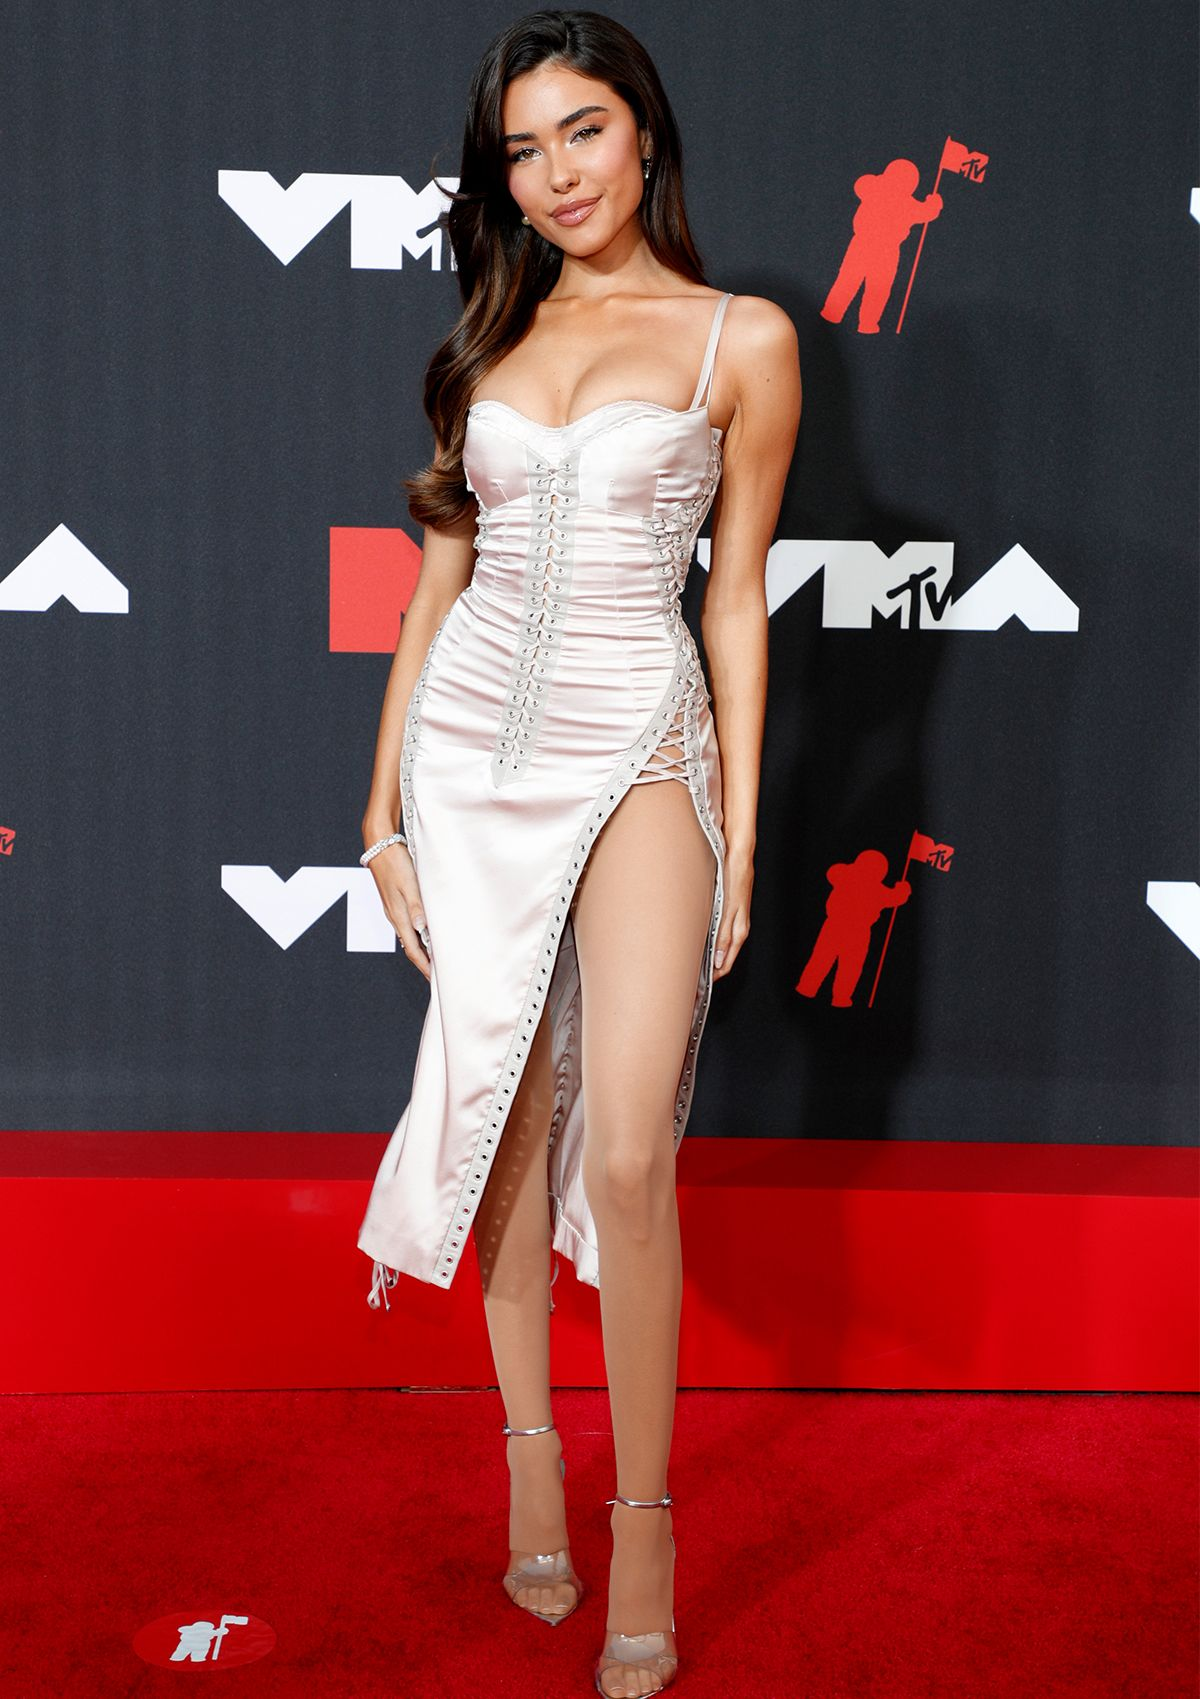 The MTV VMAs Red Carpet Looks That Shocked and Amazed Us - mtv vma red carpet 2021 295172 1631487525887